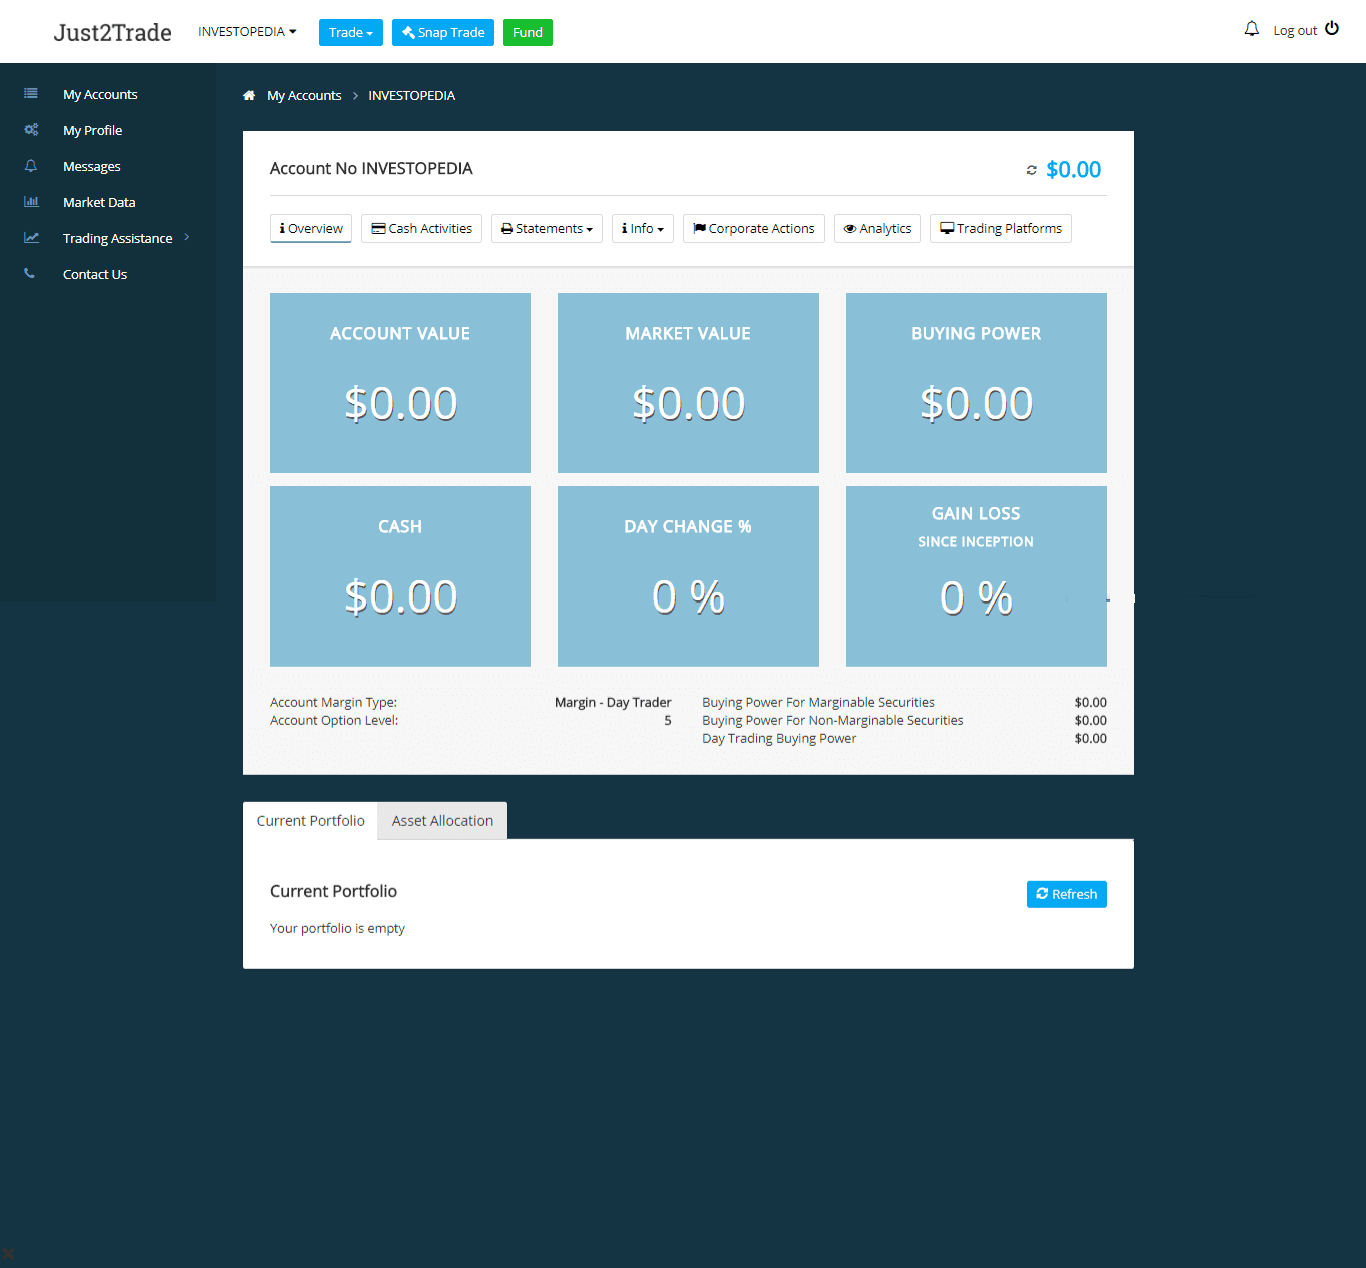 When you first log into Just2Trade's web site, you'll be brought to what it refers to as your Cabinet - which is simply your accounts dashboard. Along the left side is a vertical menu of user tools, and inside the main window there's a series of tabs arranged horizontally. On the Account Overview, you'll get a snapshot of your cash balances and account value along with the holdings in your portfolio.